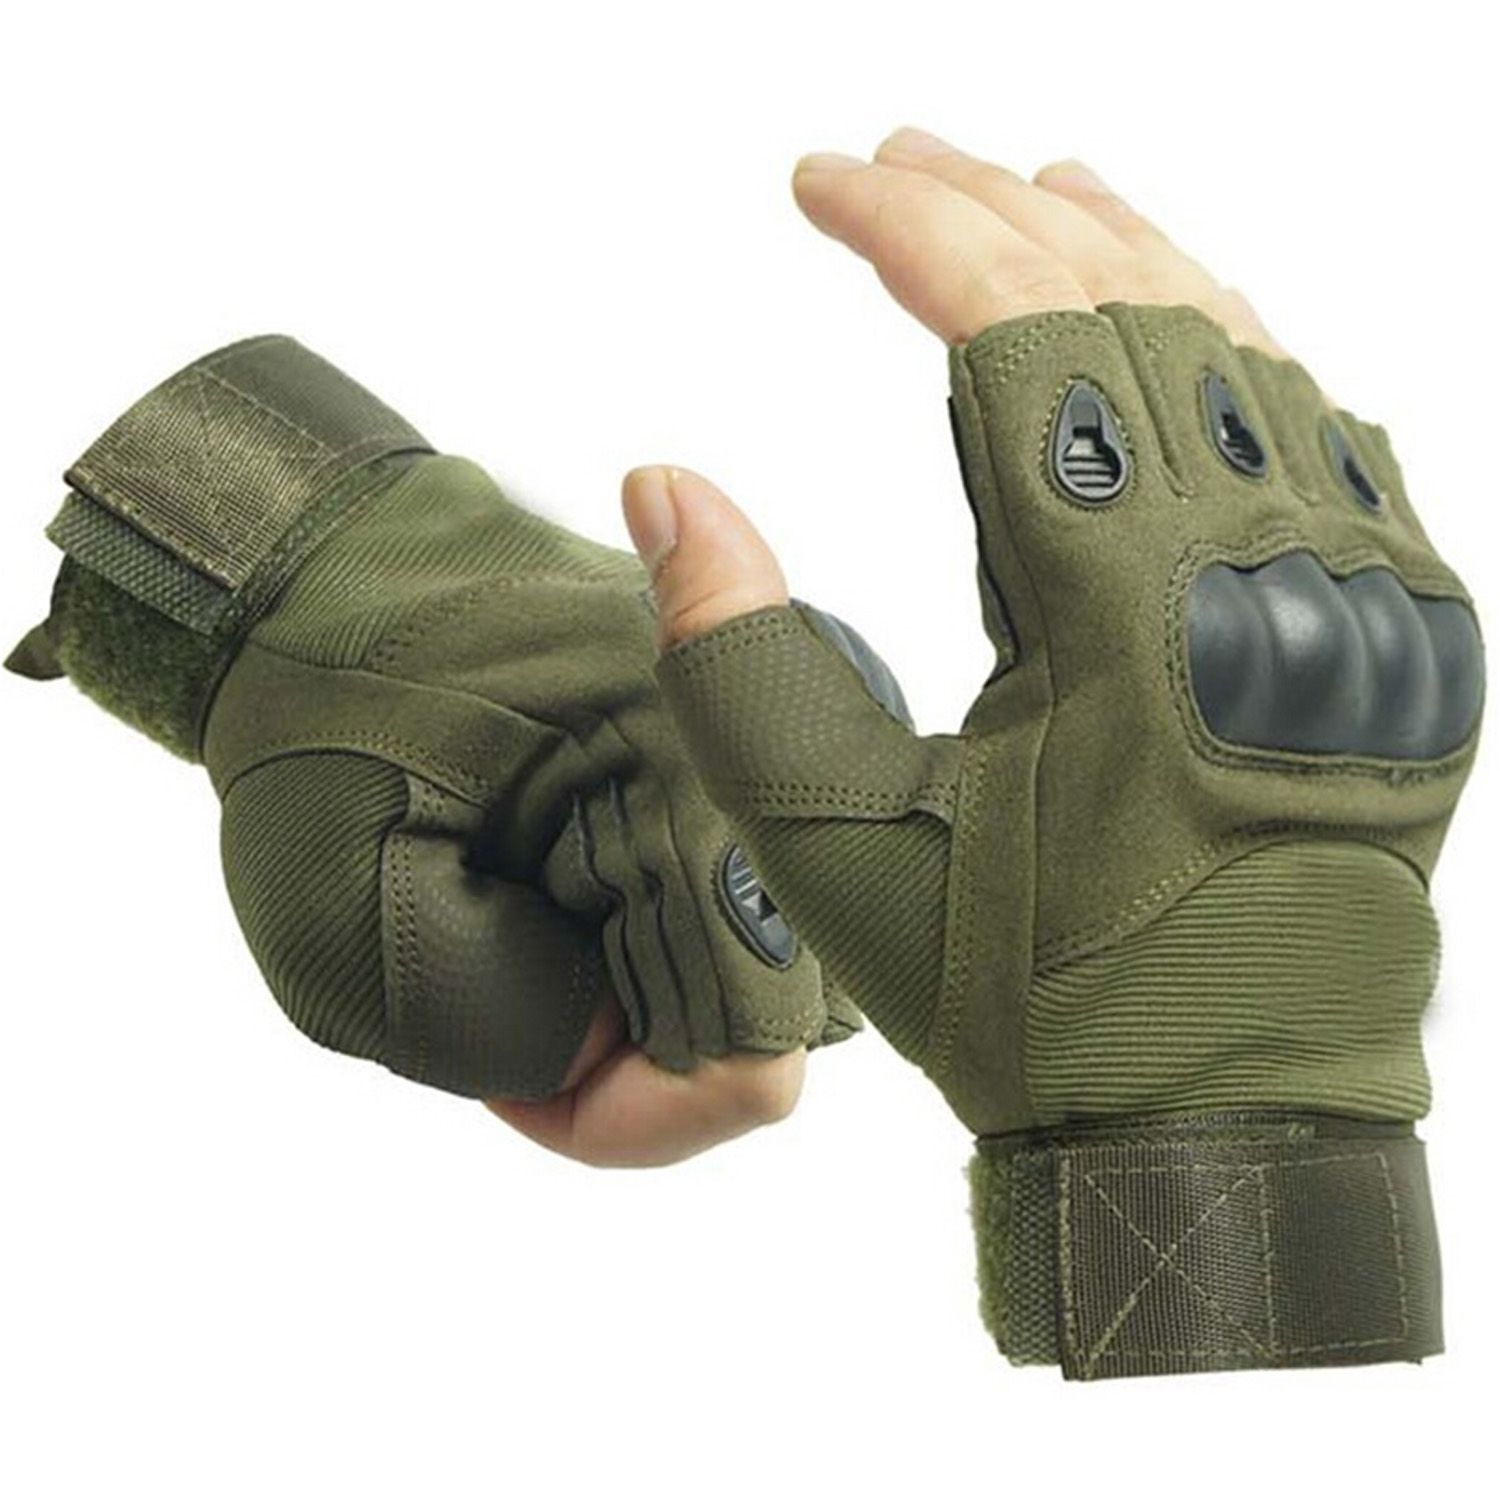 Outdoor Airsoft Hunting Cycling Motorcycle Driving Tactical Fingerless  Gloves XL Army Green acf37728470